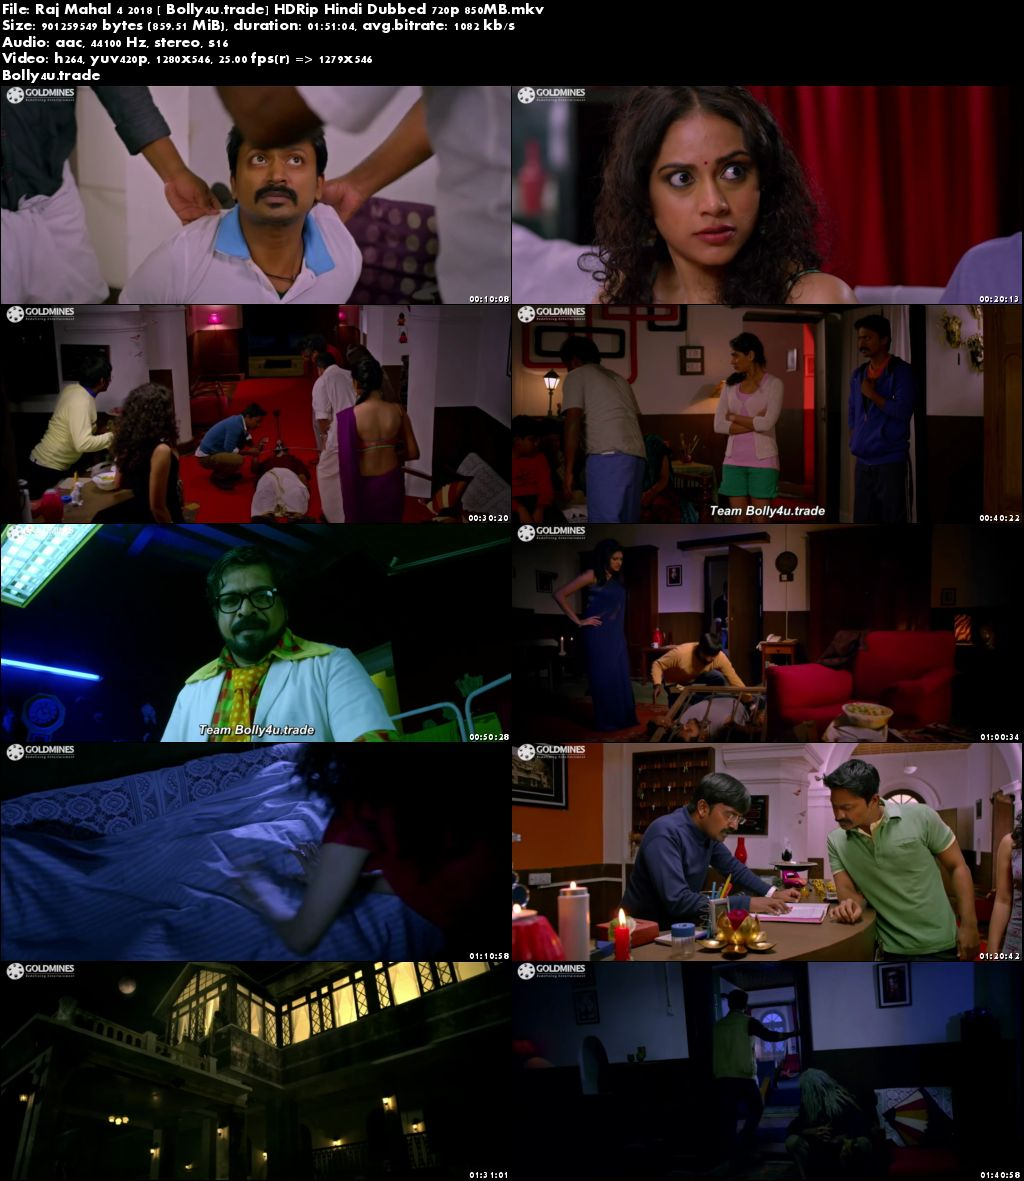 Raj Mahal 4 2018 HDRip 300Mb Full Hindi Dubbed Movie Download 480p